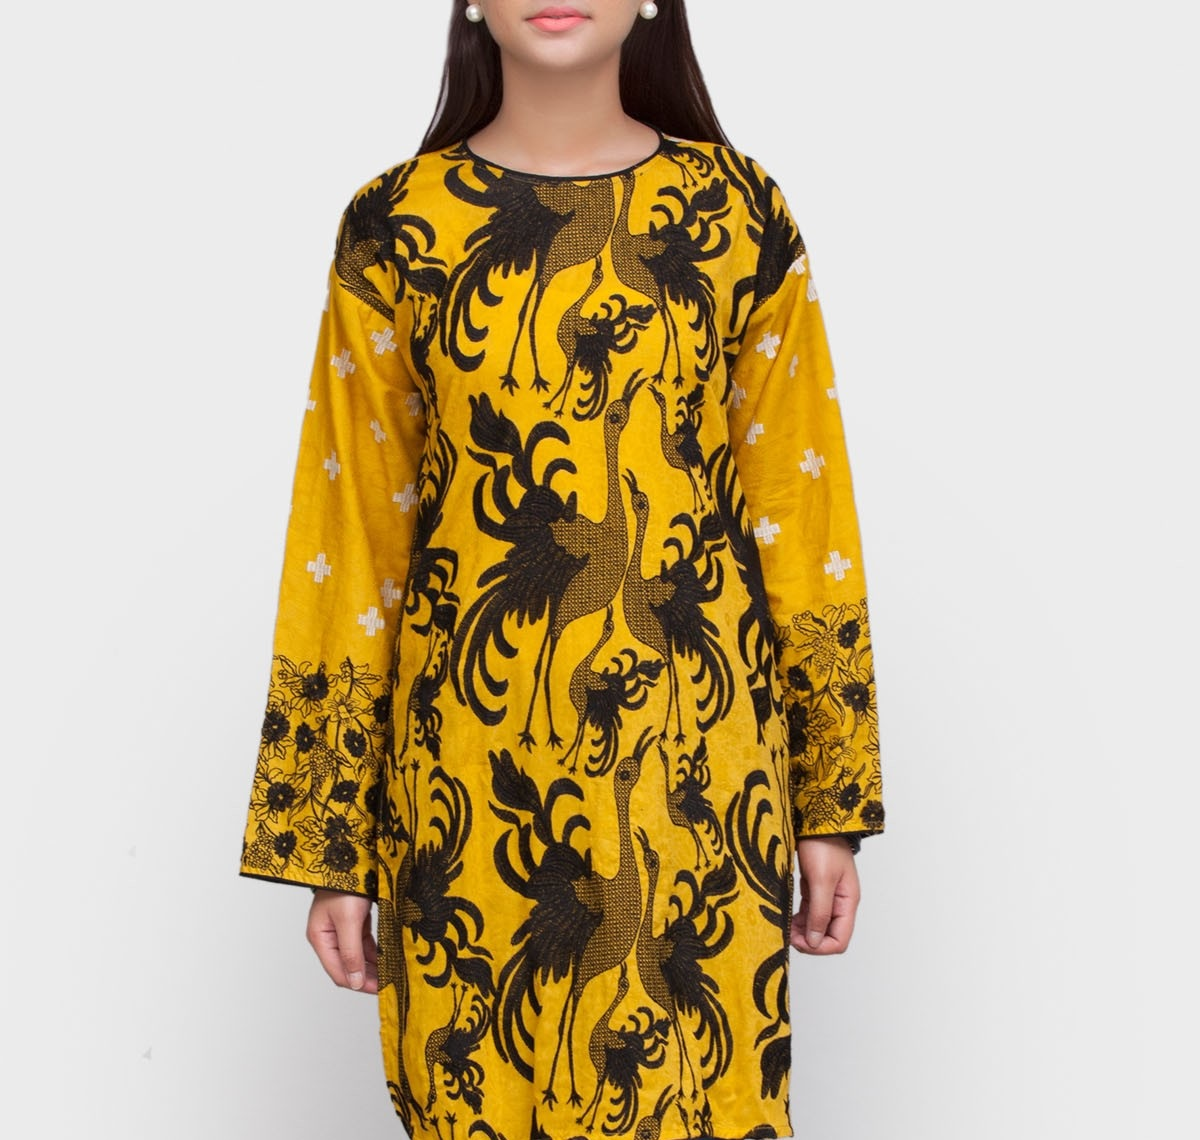 peacock design yellow winter tunic in honey bee contrast